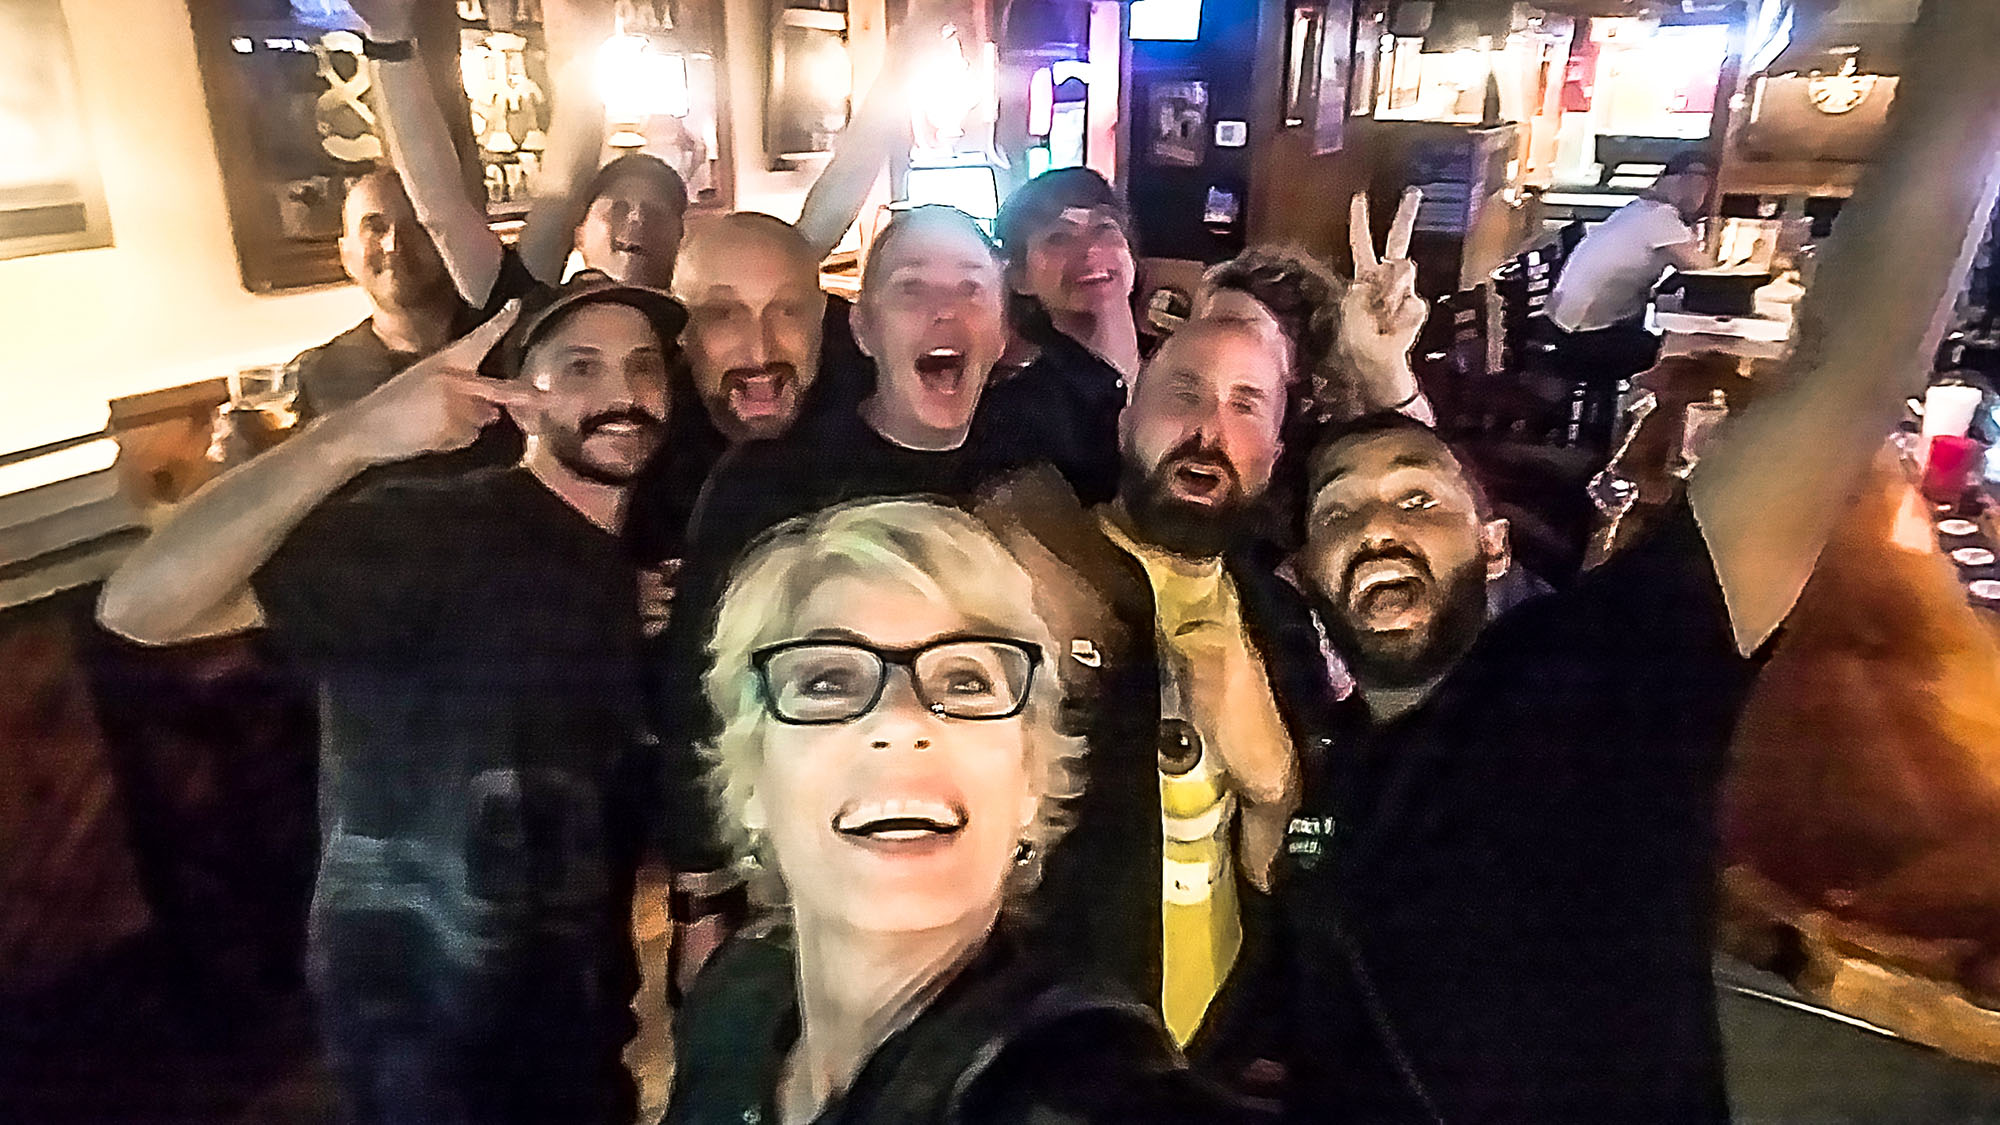 Crew _ GKs band members out at a bar after show.jpg